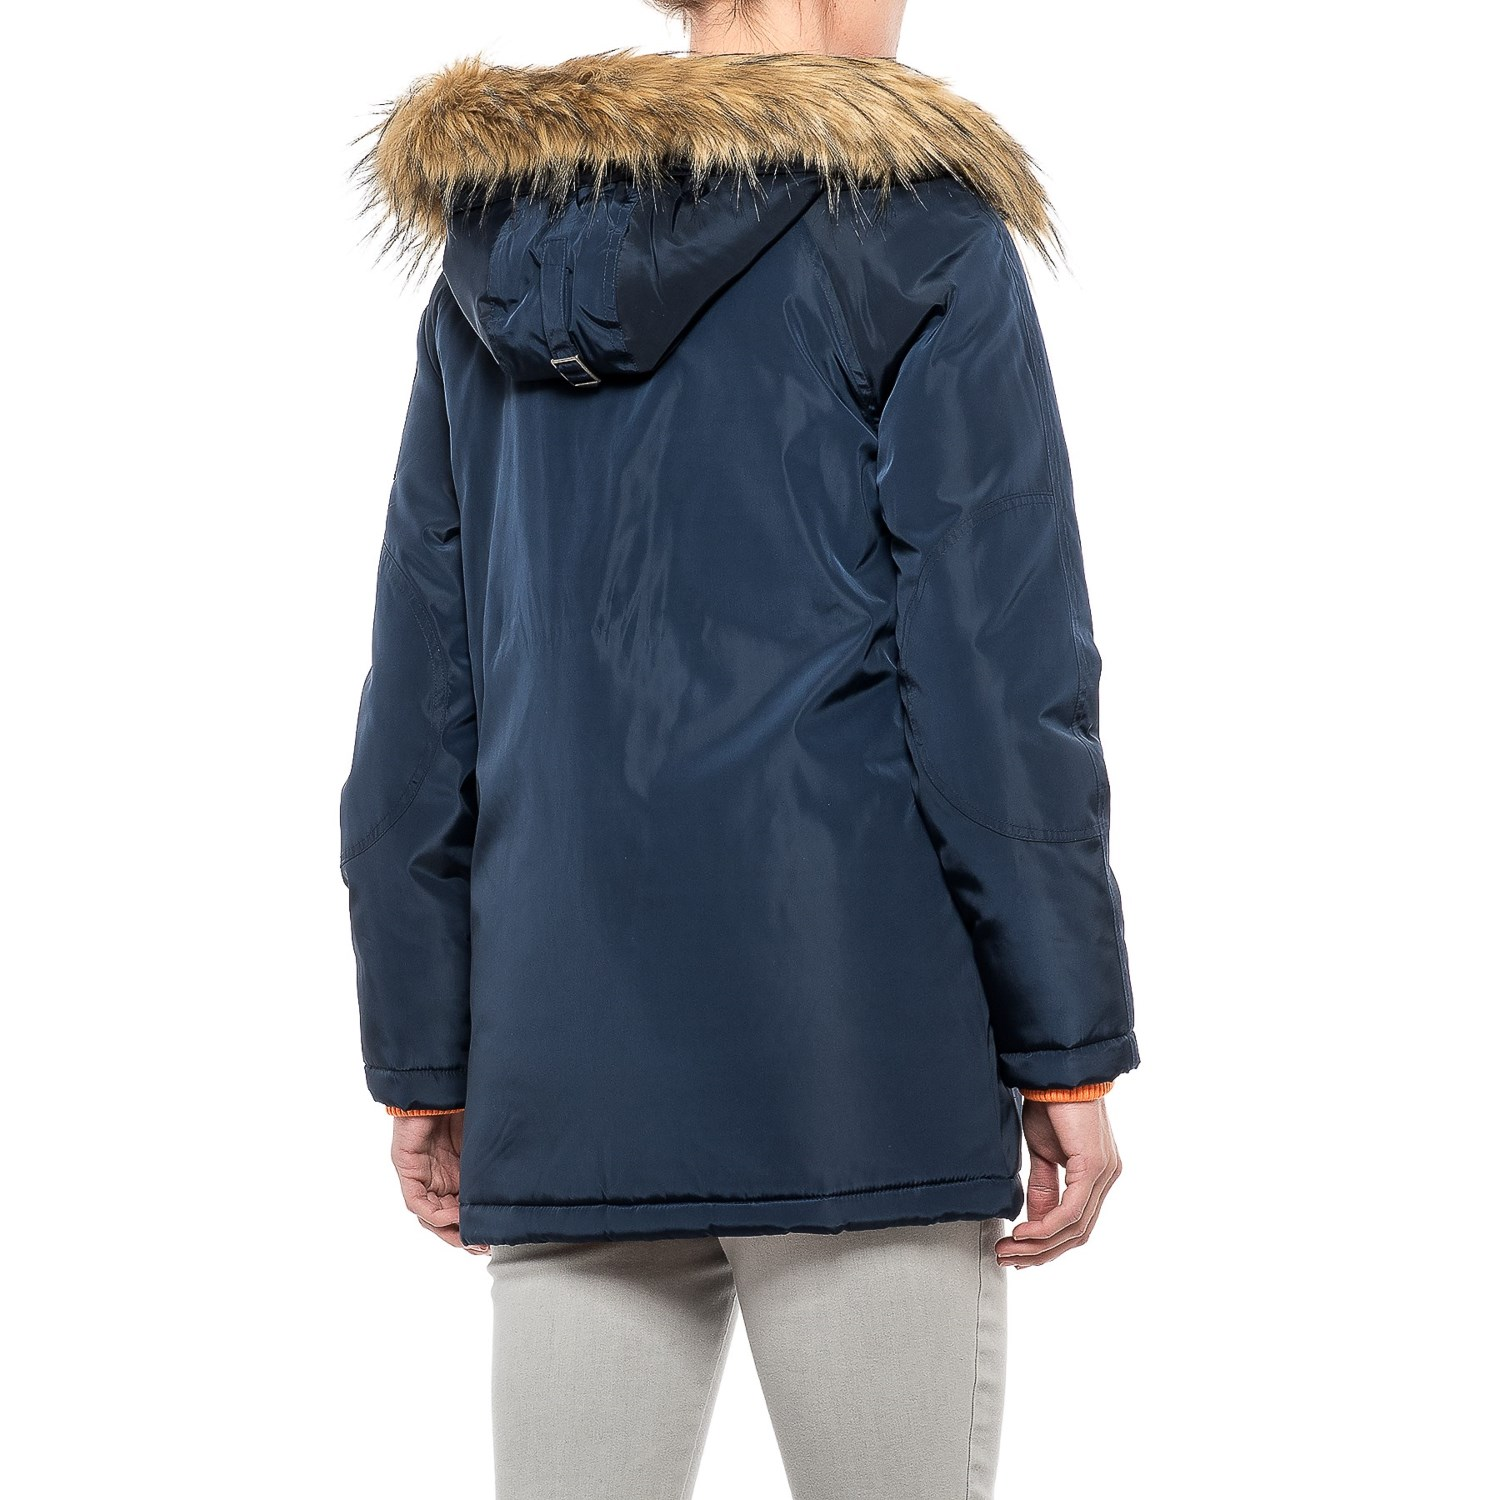 G.H. Bass & Co. Long Hooded Parka (For Women) - Save 64%